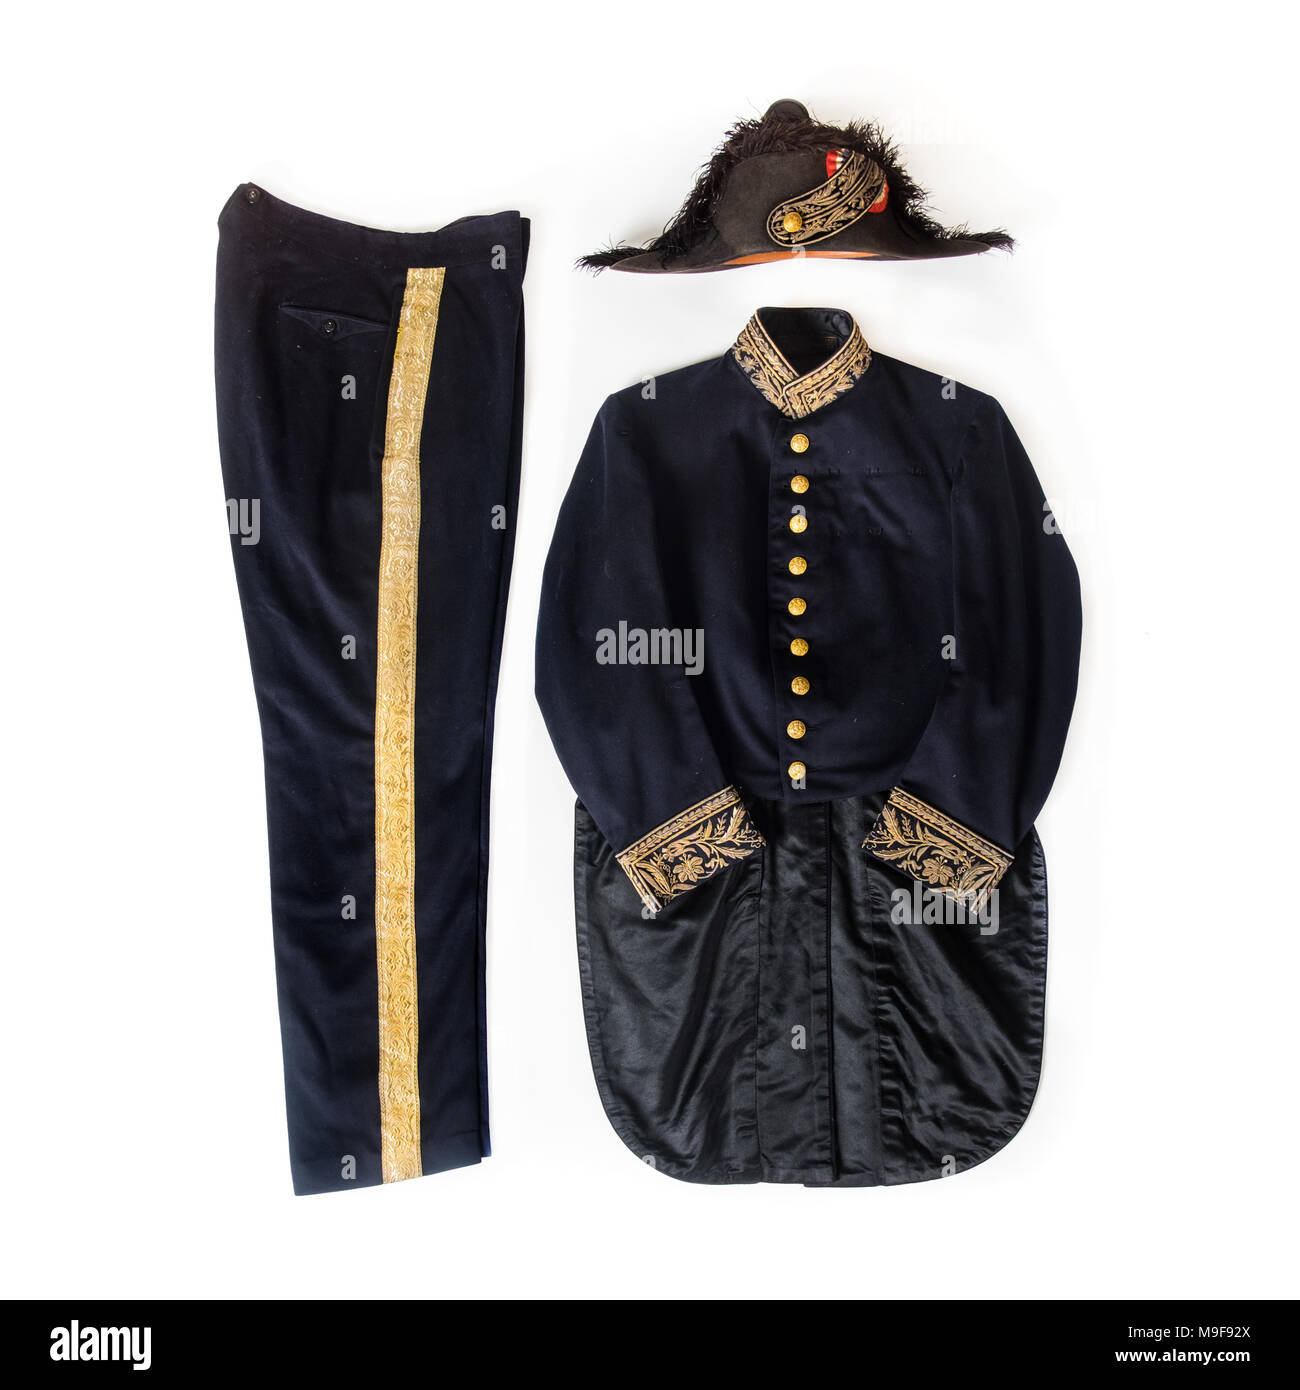 Antique 19th century (c.1895) French Diplomatic Officer's uniform with bicorne hat - Stock Image